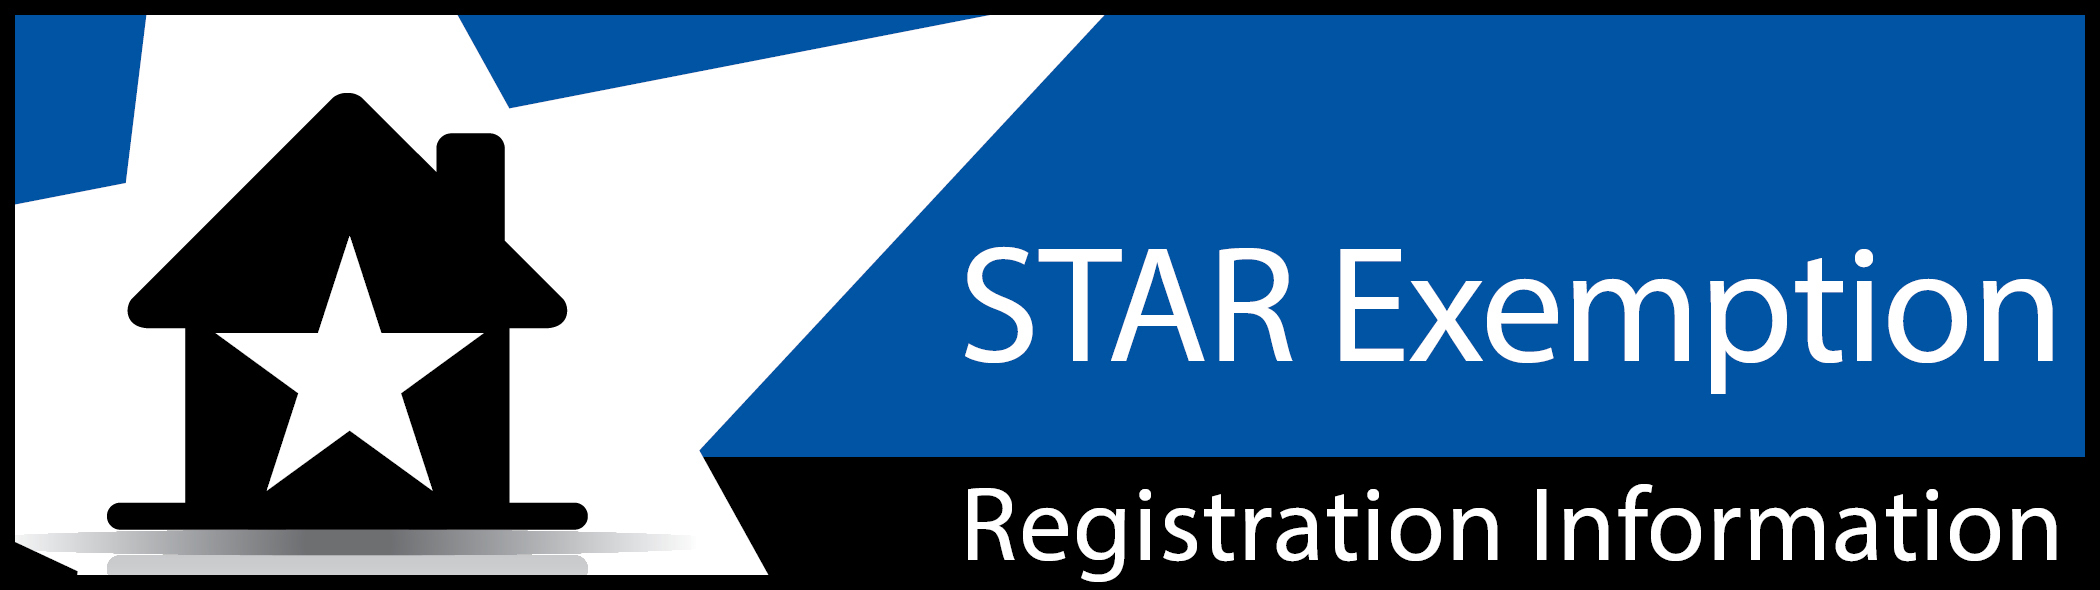 STAR Exemption Registration Form